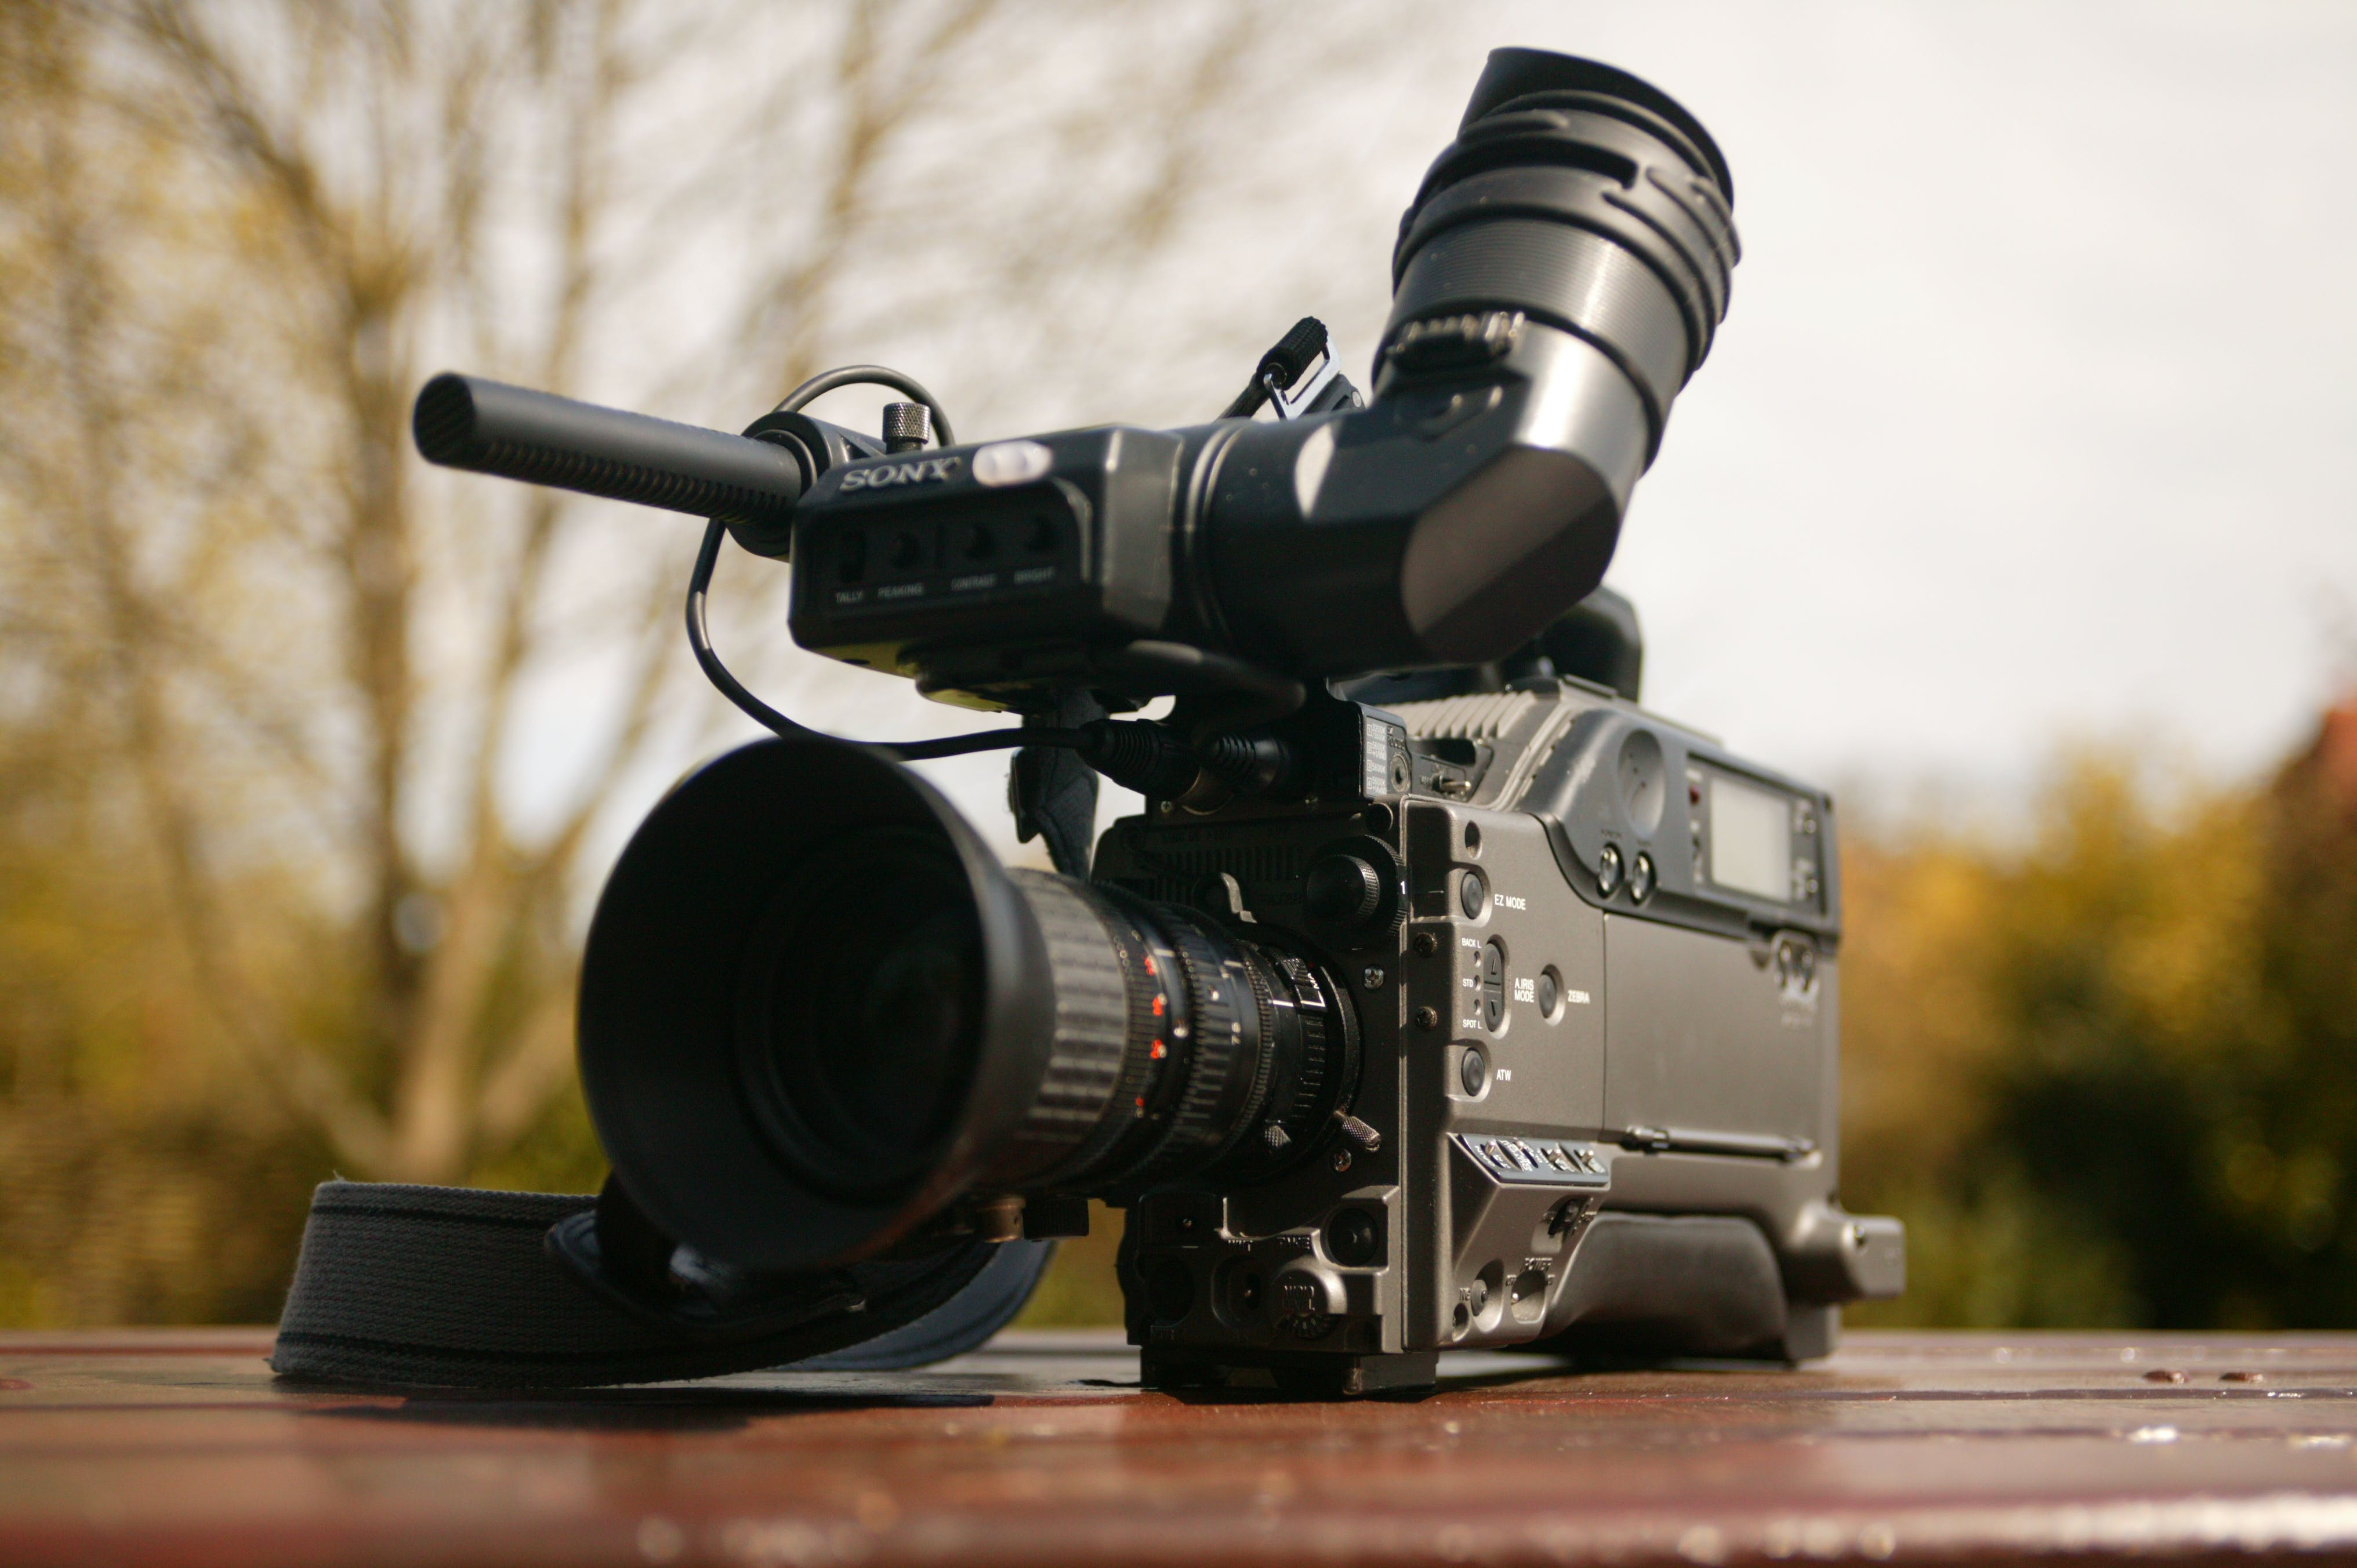 Black Video Camera on Brown Wooden Table